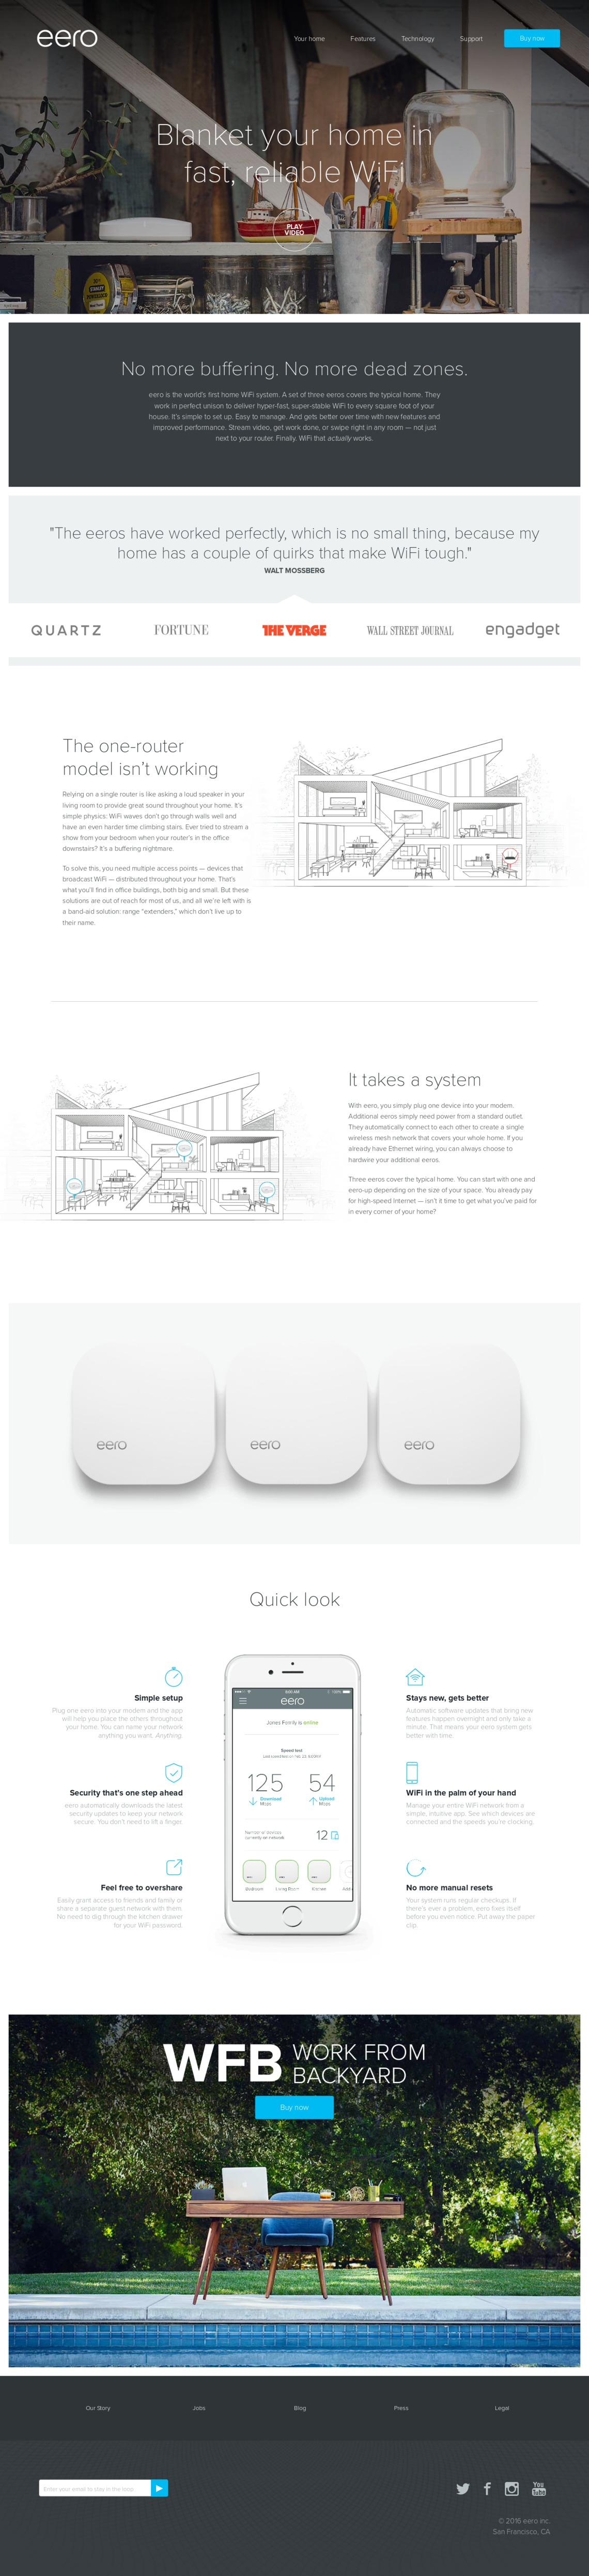 eero - Finally, WiFi that works